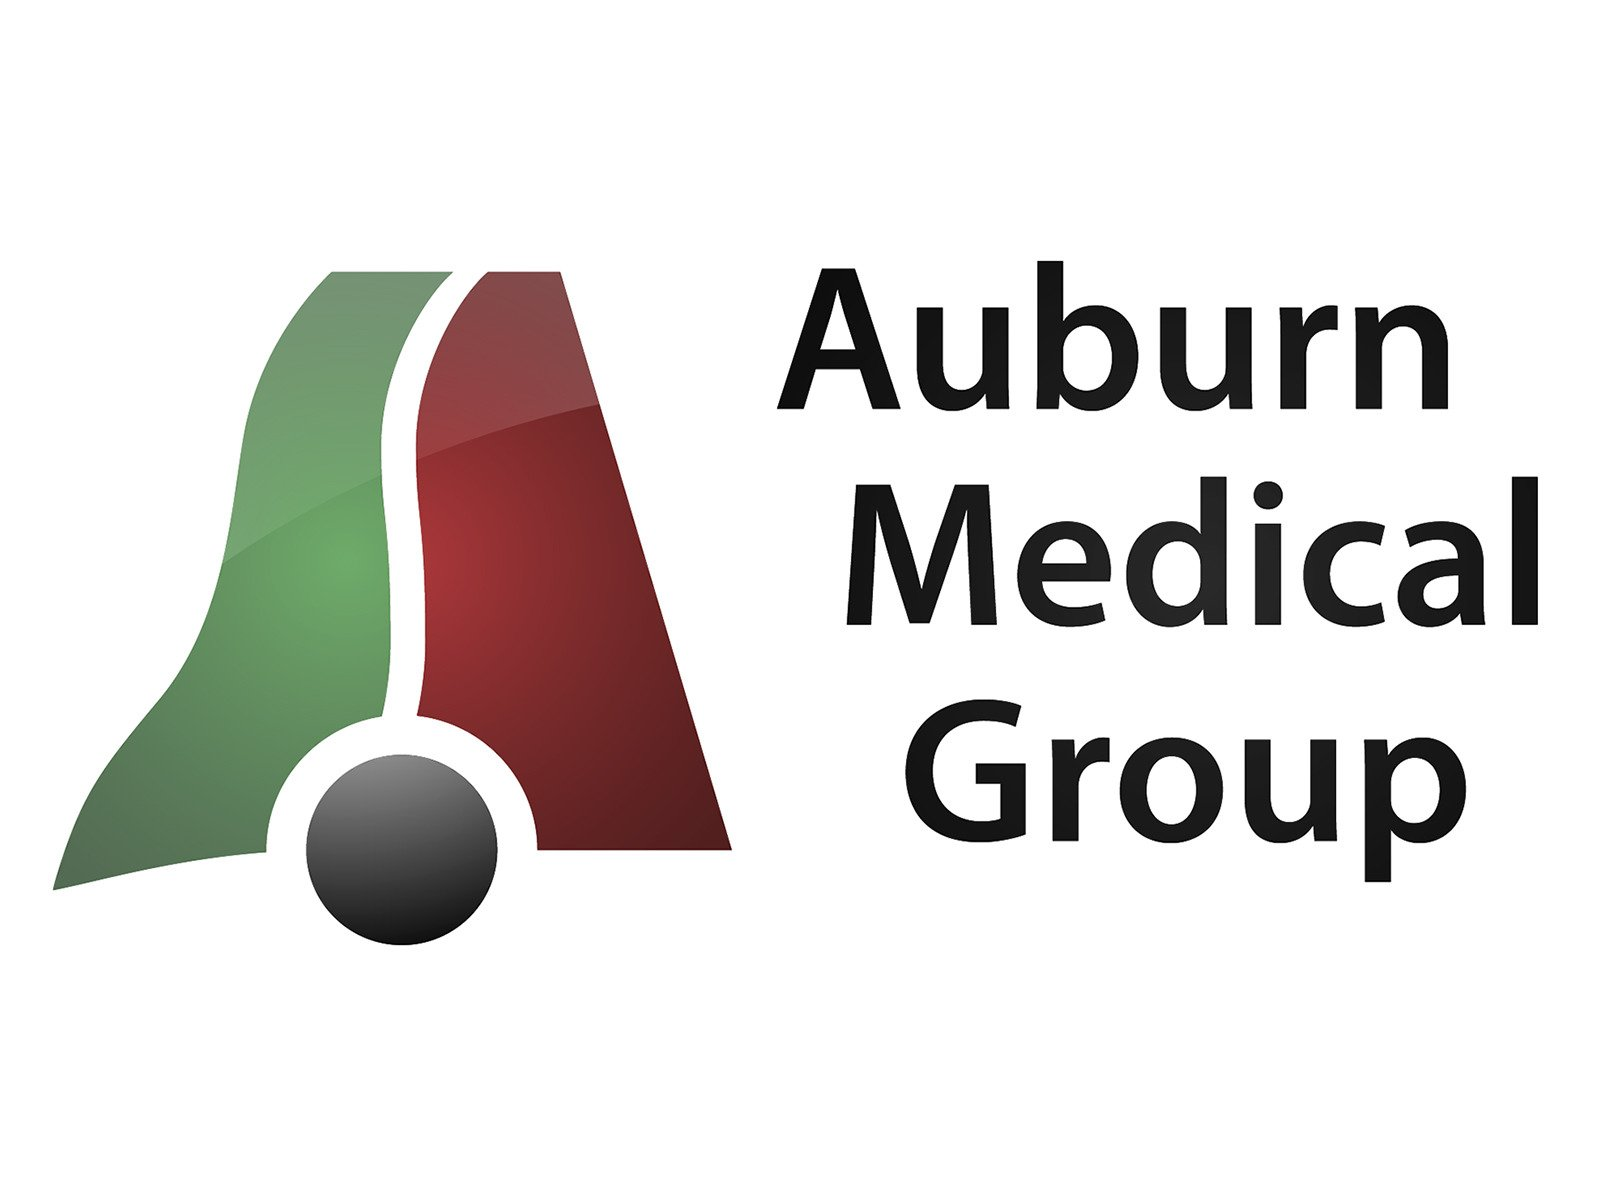 Auburn Medical Group - Season 2